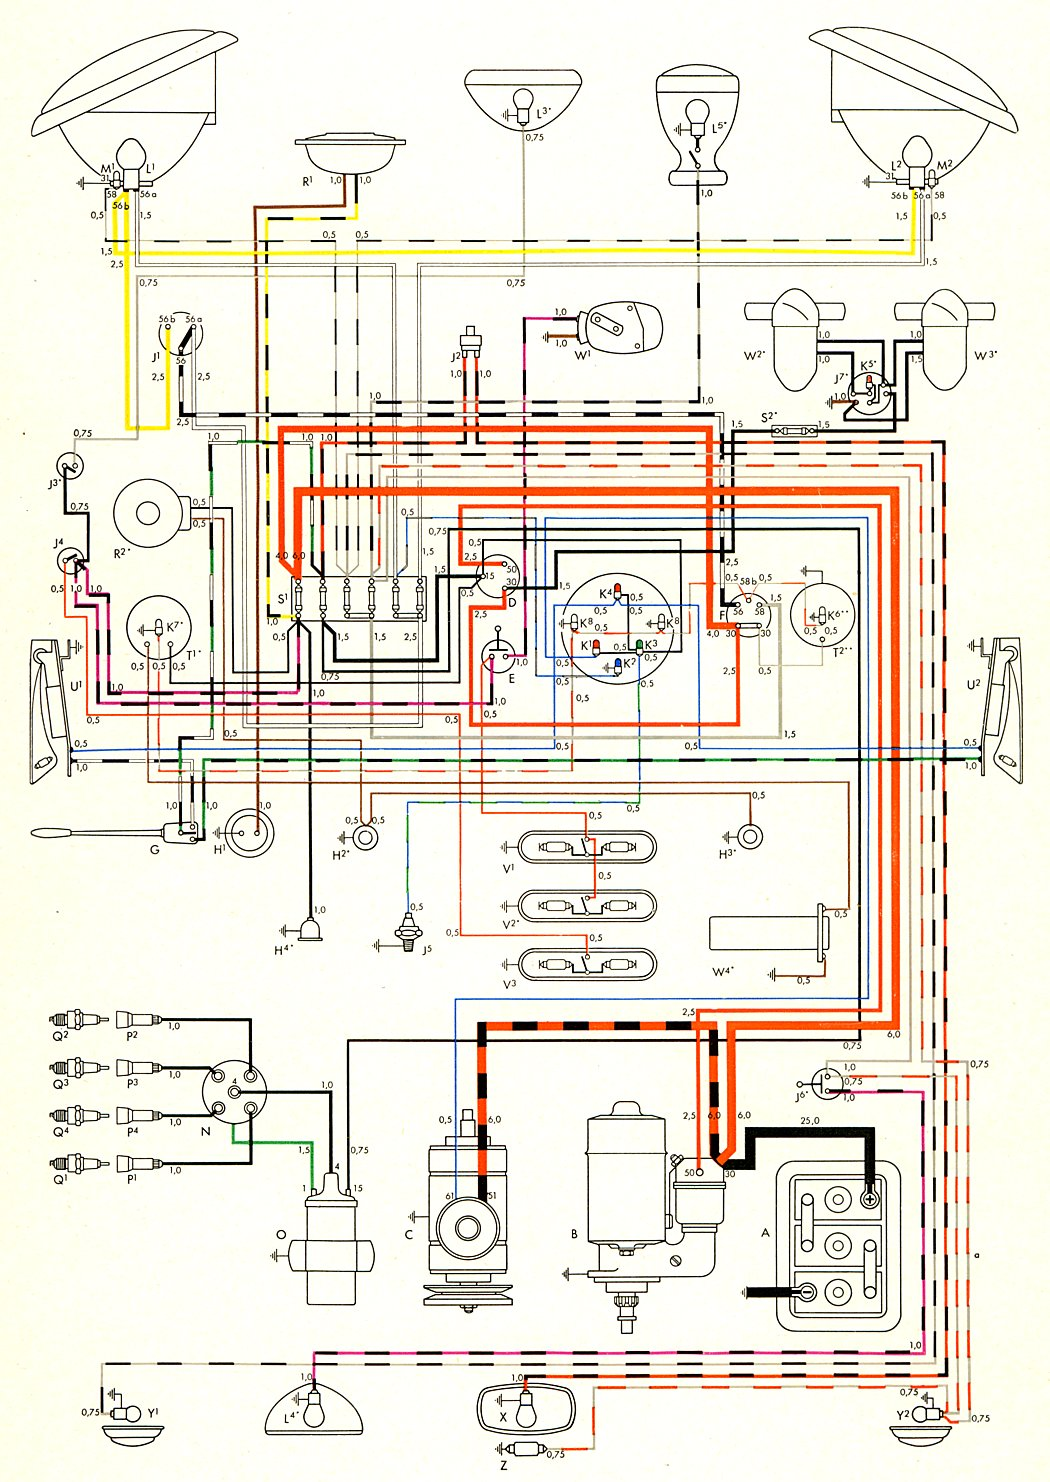 1970 Vw Bus Parts Diagram Trusted Schematics Furthermore Beetle Engine On 79